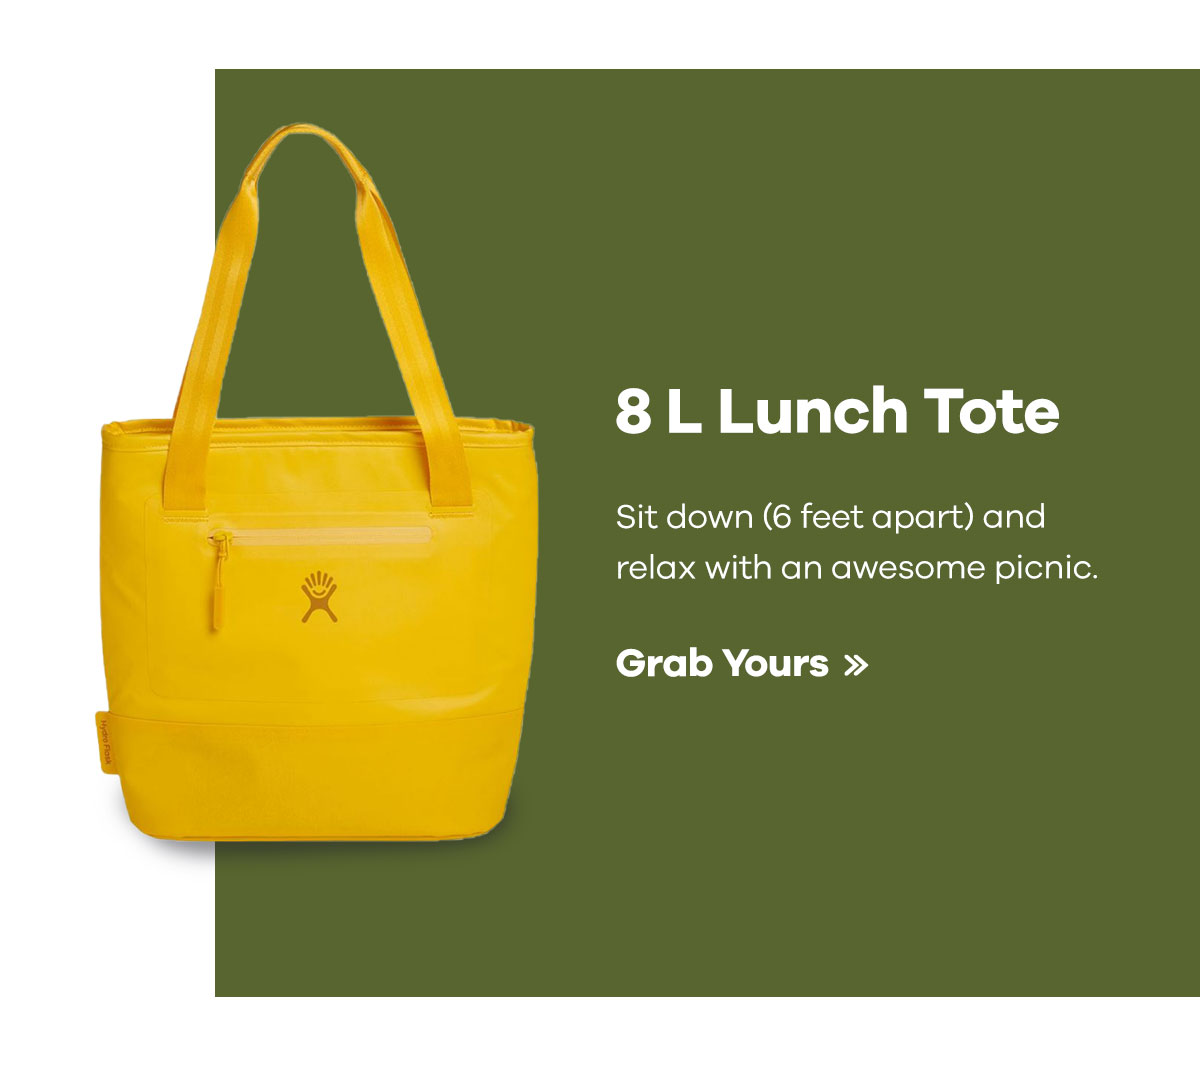 8 L Lunch Tote - Sit down (6 feet apart) and relax with an awesome picnic. | Grab Yours >>